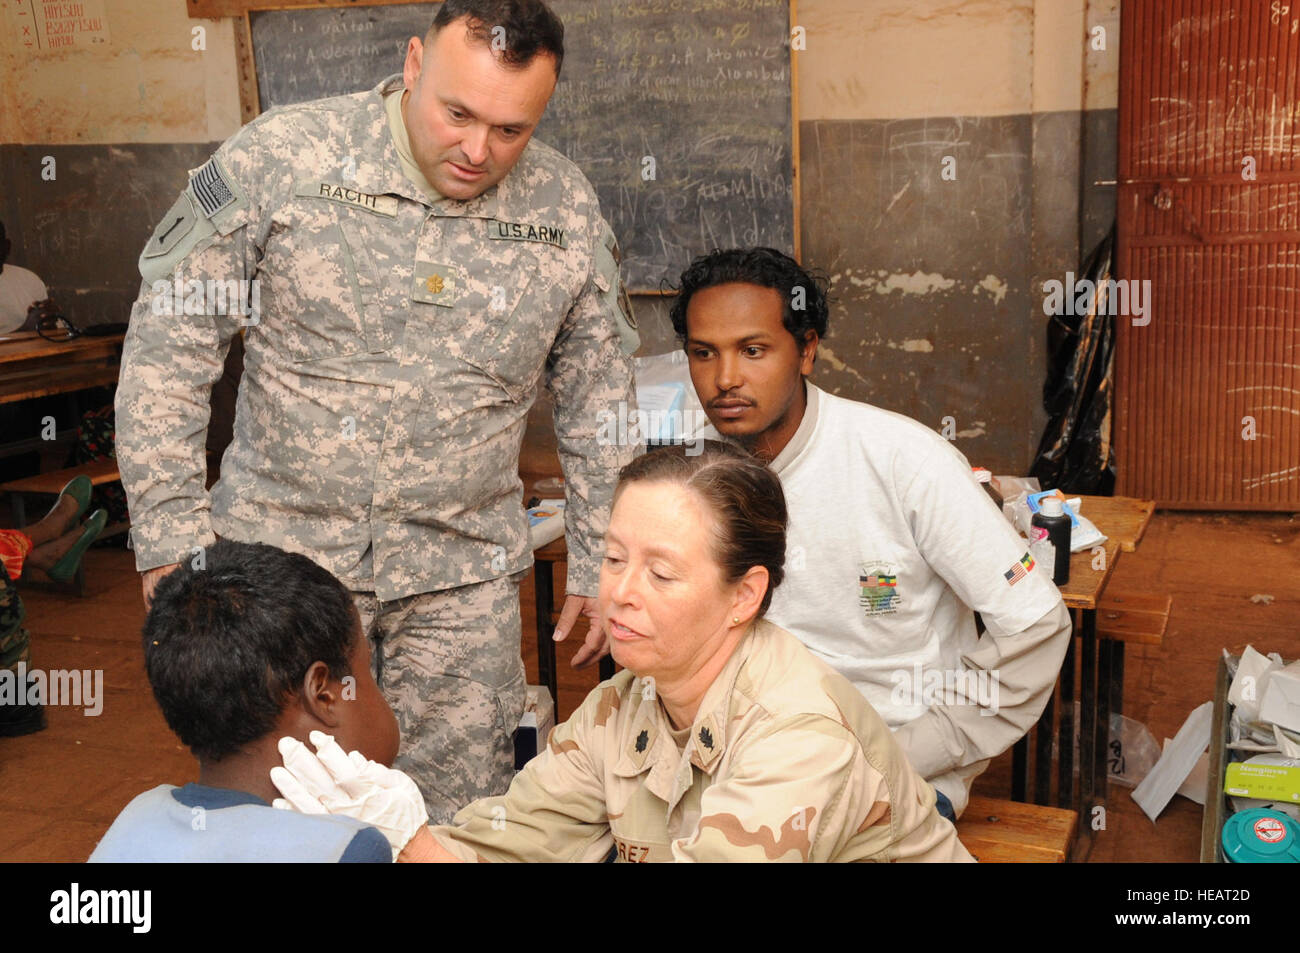 US Army MAJ Marc Raciti and a local medical provider watch as Navy CMDR Nora Perez examines a young boy during a - Stock Image